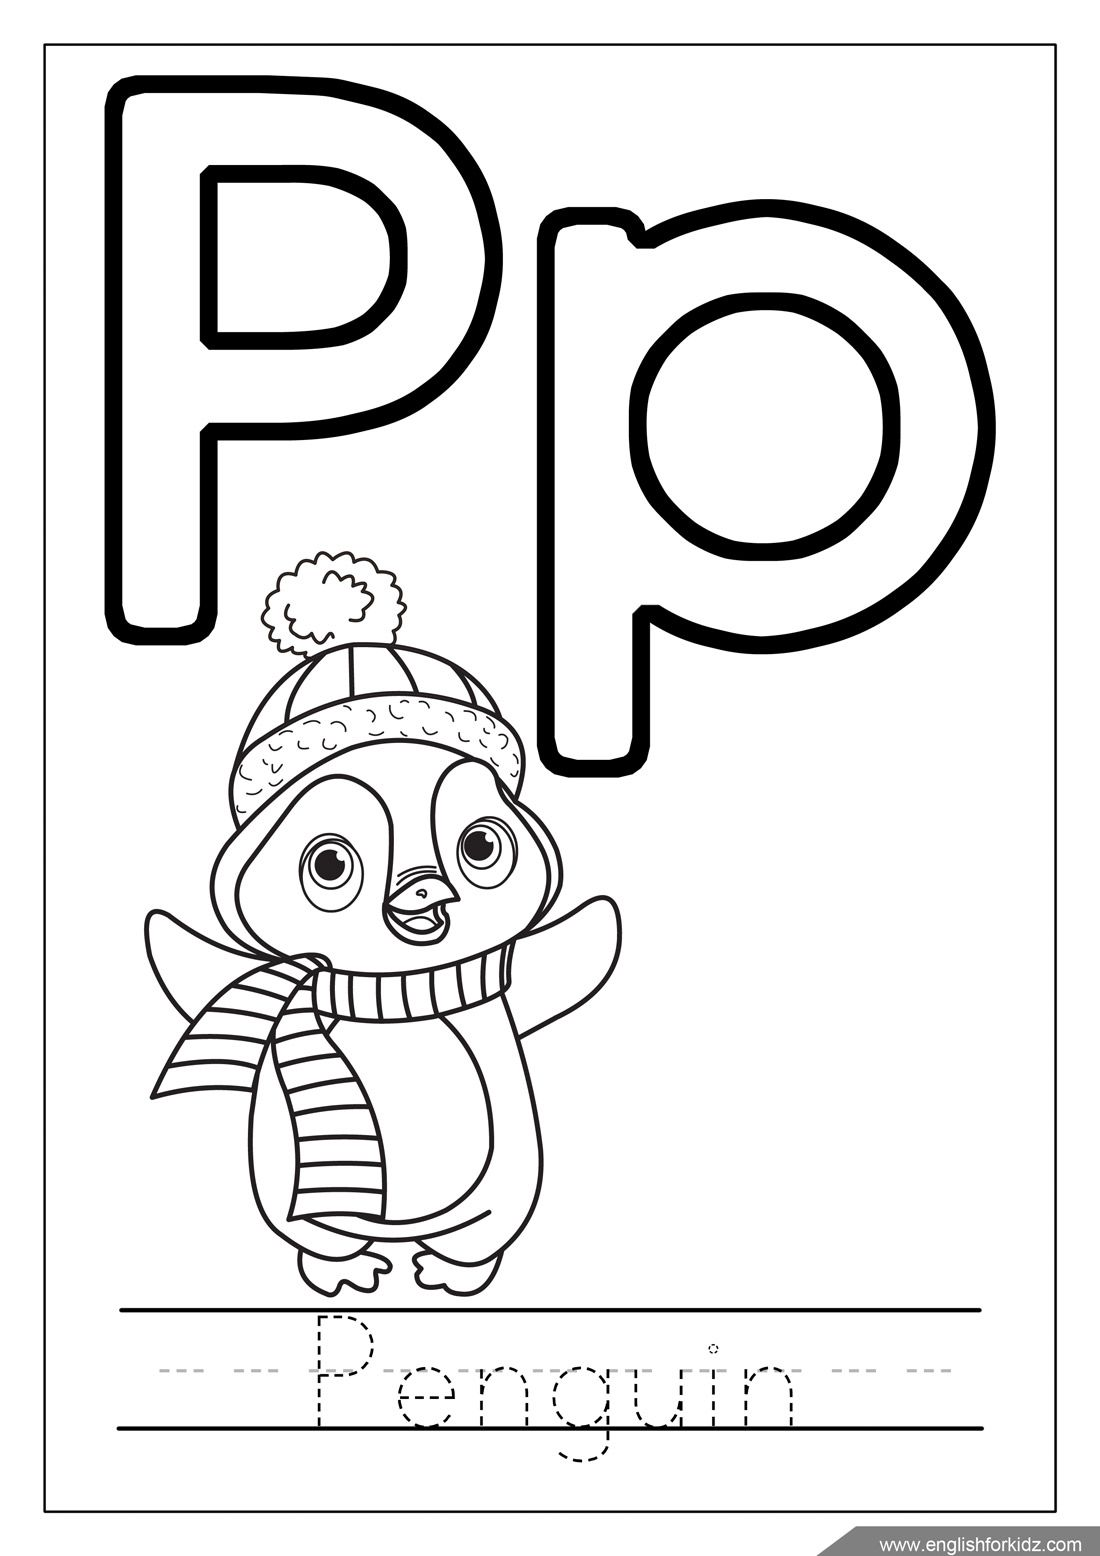 Pin By Englishforkidz On English Learning Winter Worksheets And Flashcards Alphabet Coloring Letter A Coloring Pages Penguin Coloring Pages [ 1556 x 1100 Pixel ]